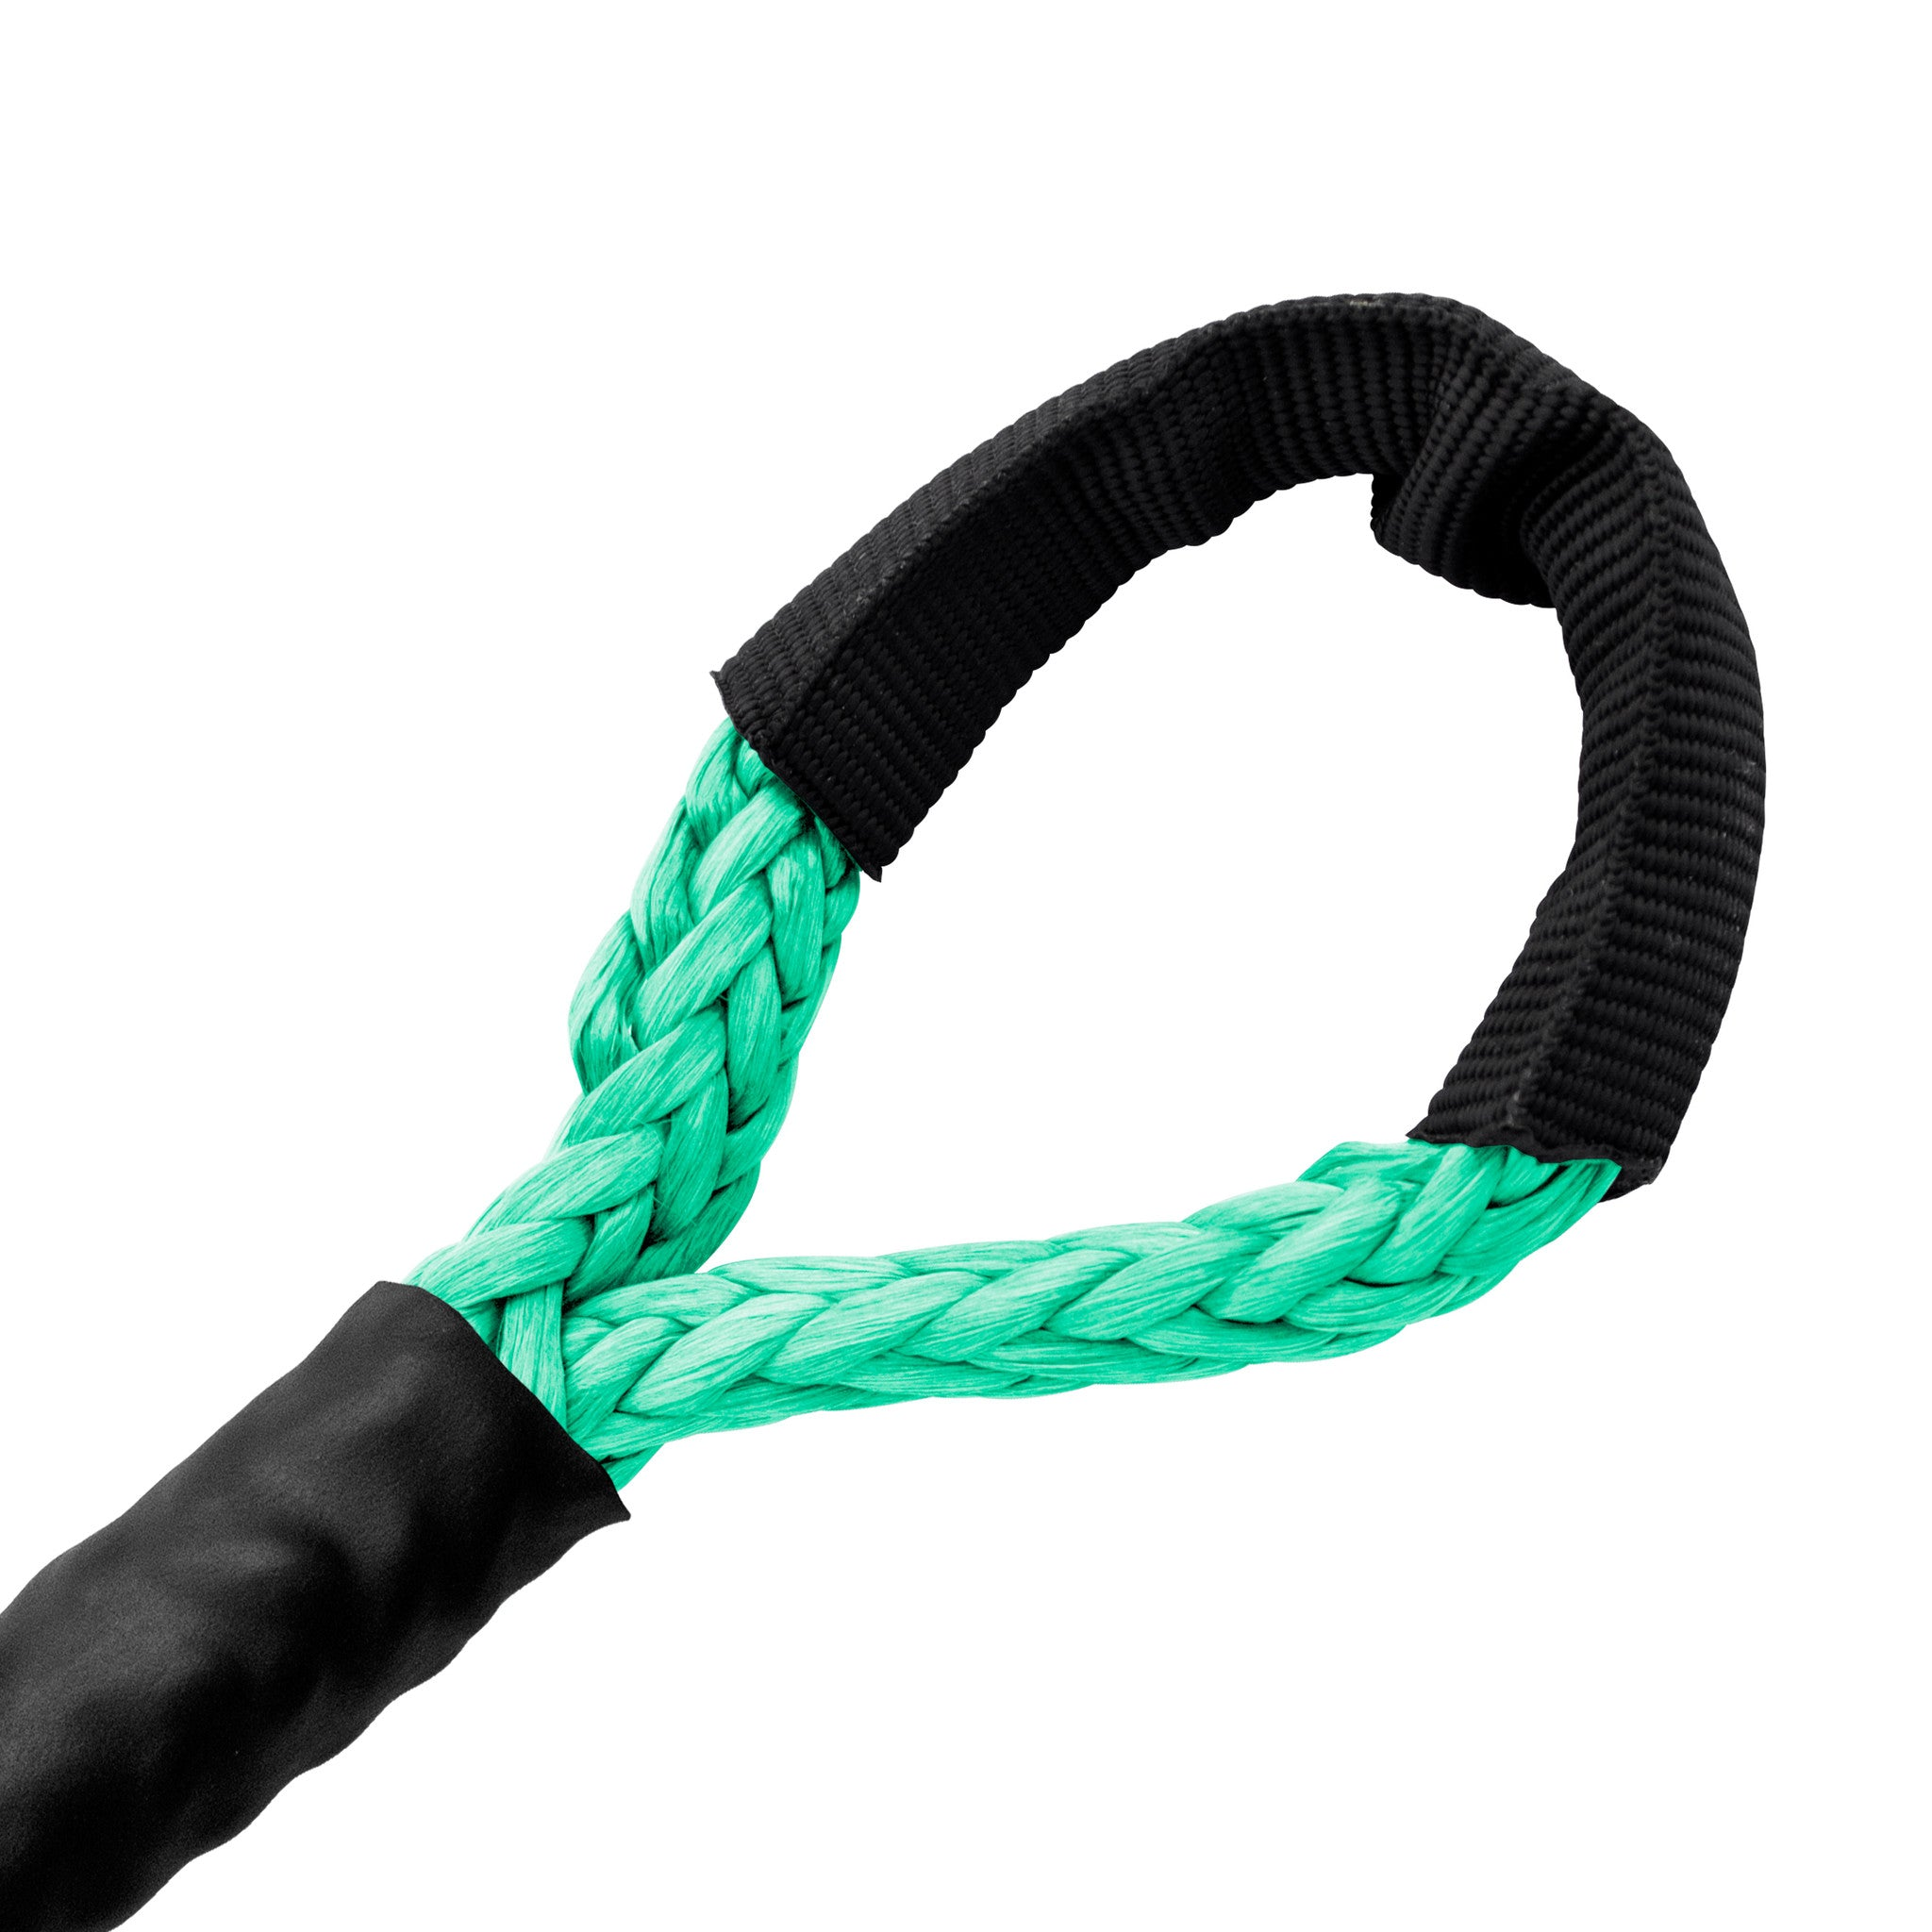 "3/16"" Diamond Line Winch Rope Soft Eye - Teal Green."